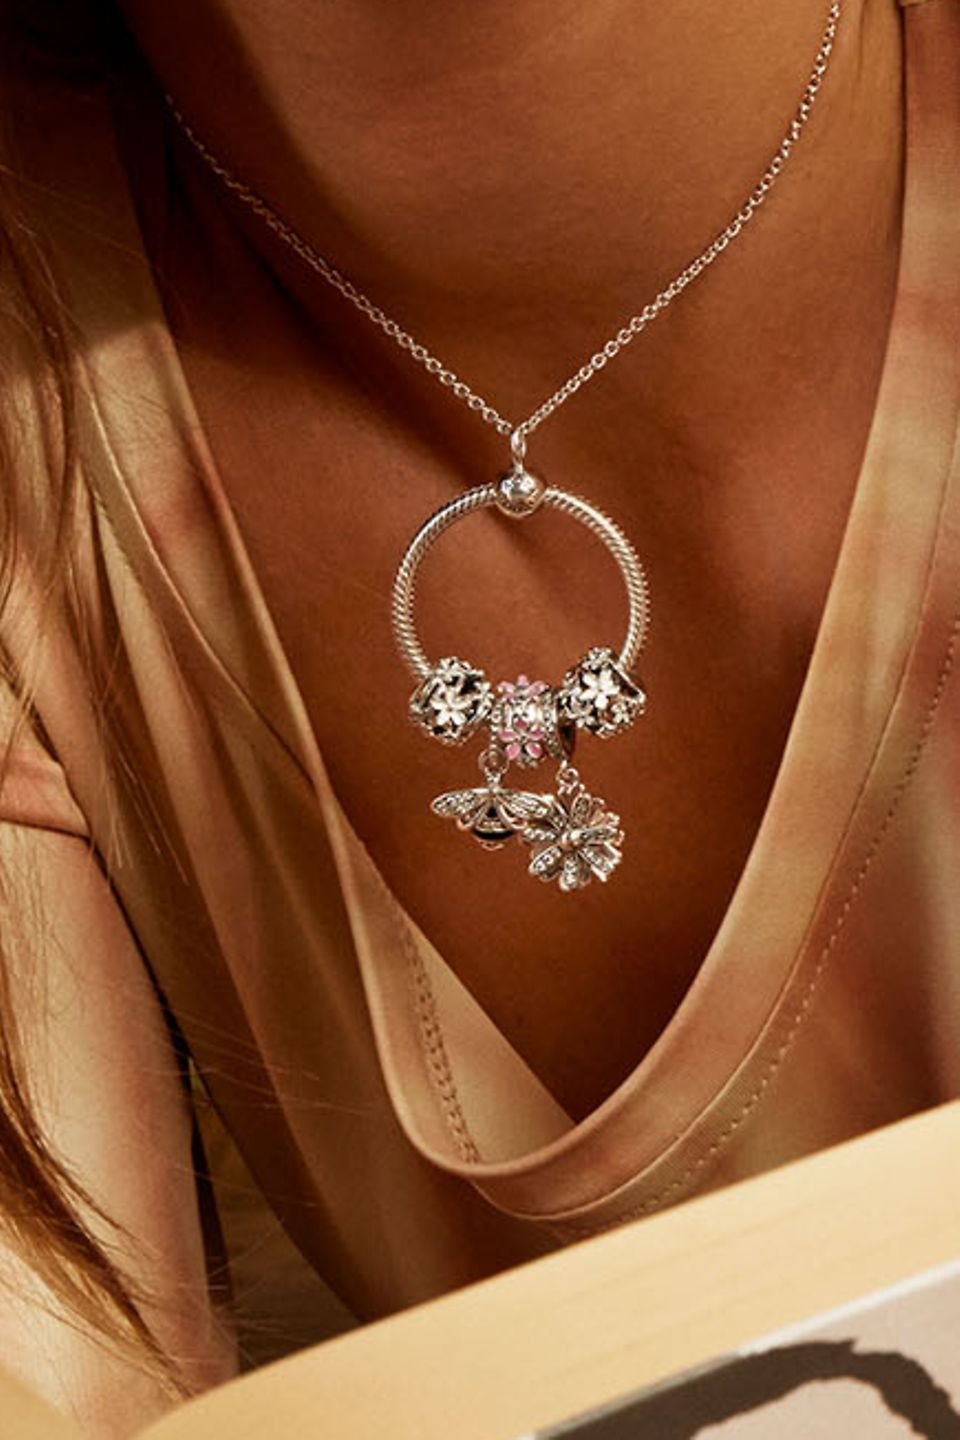 Bring Pandora Garden into your look with daisy-inspired charms and earrings.